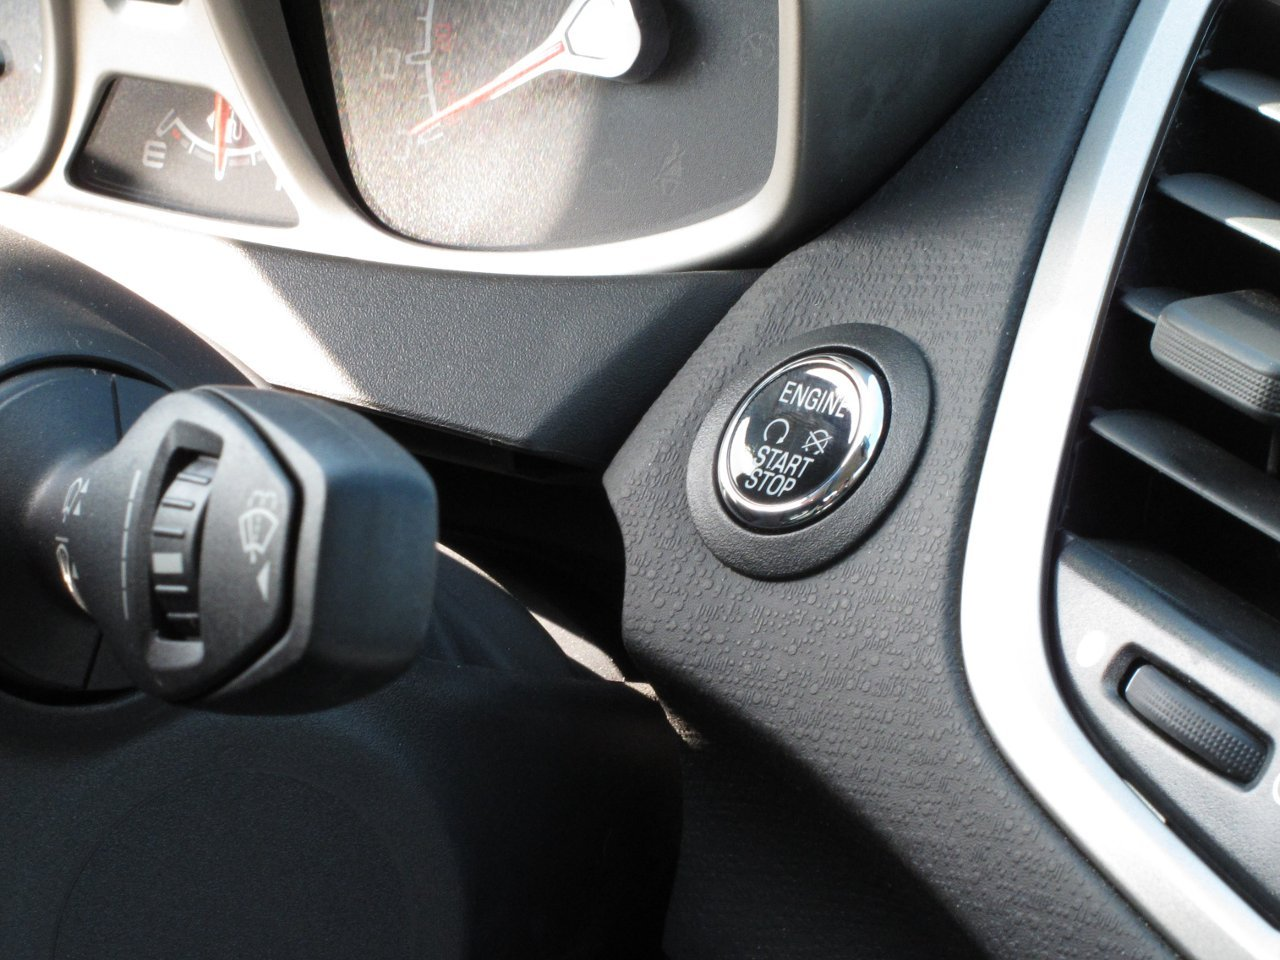 Keyless Ignition Push to Start.JPG